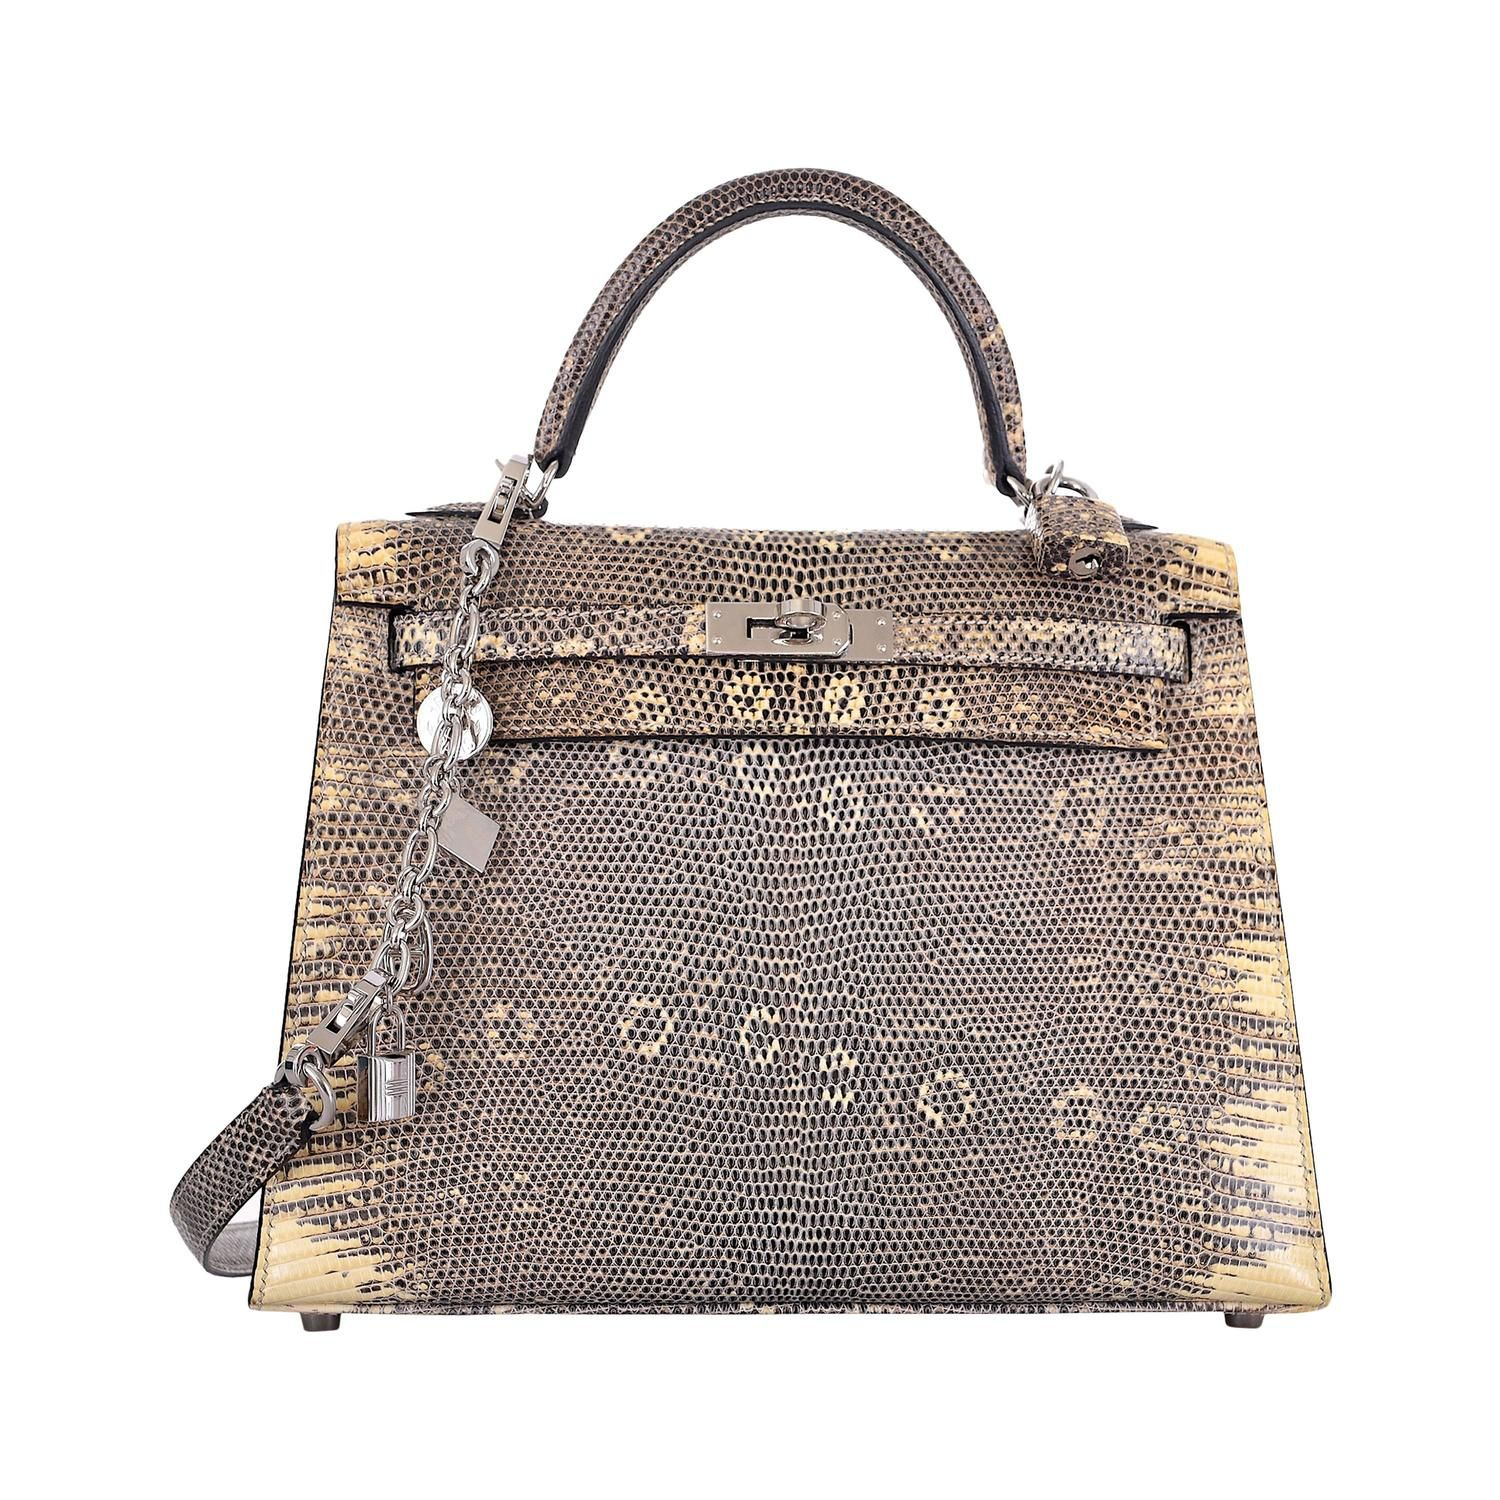 c93b2d2187a6 IMPOSSIBLE FIND HERMES KELLY BAG 25CM OMBRE LIZARD FABULOSITY JF FAVE  JaneFinds